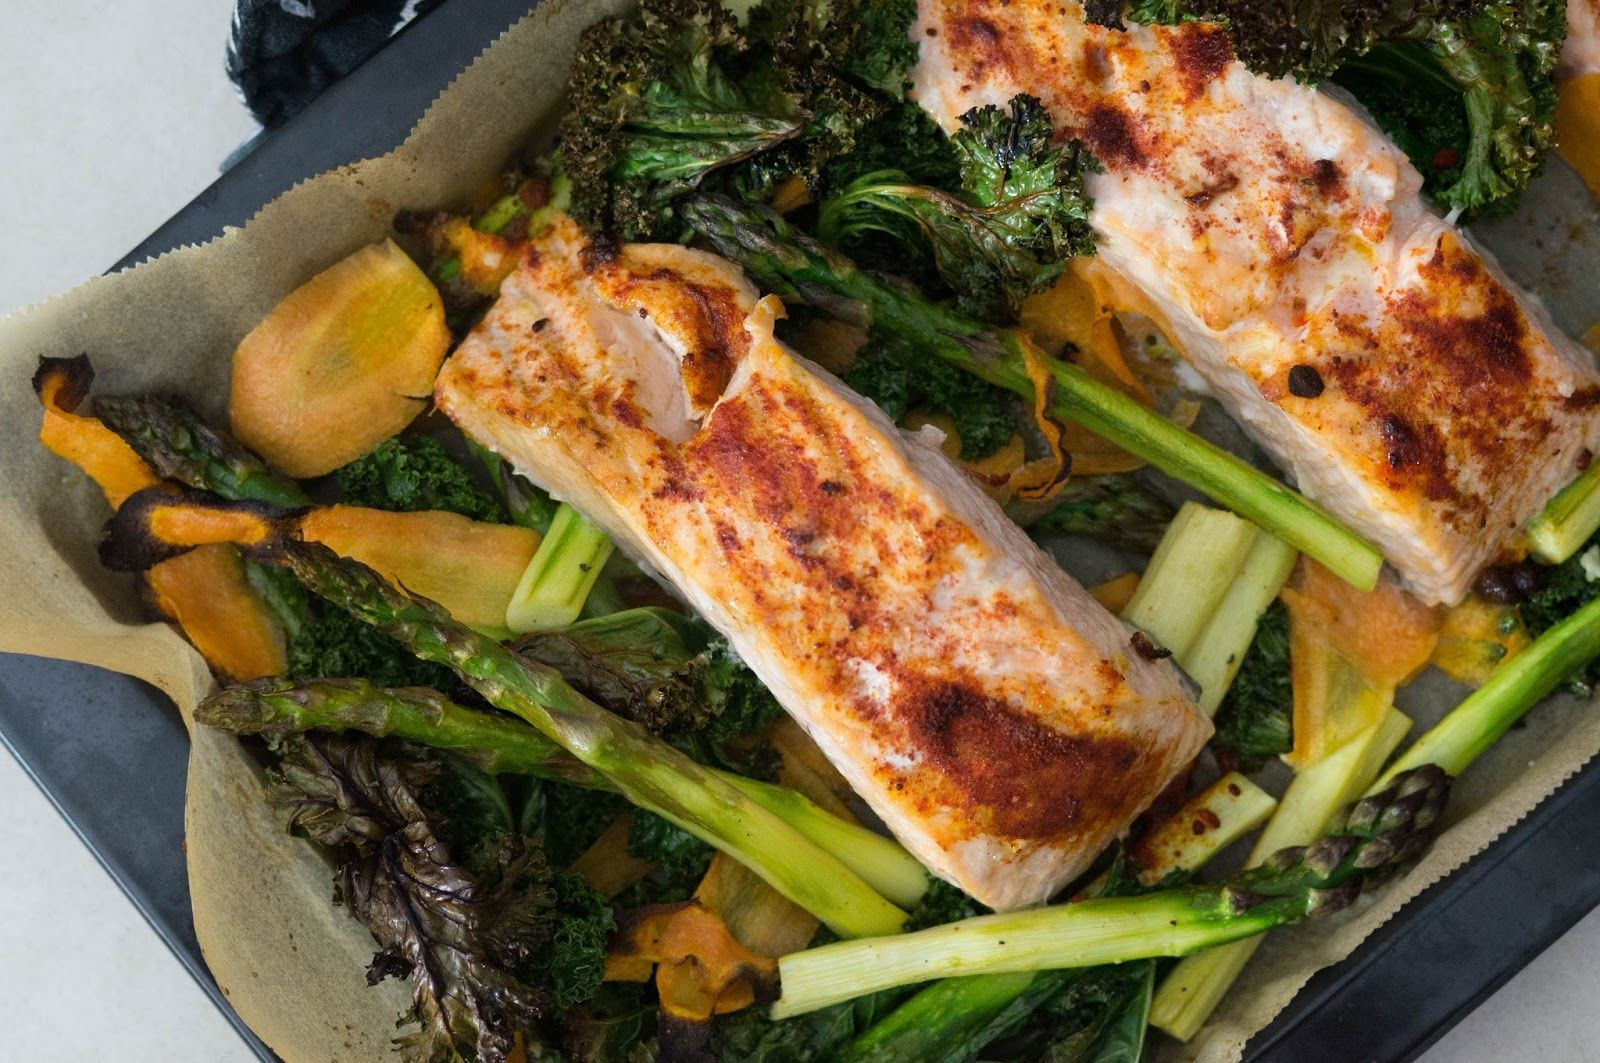 Salmon, asparagus and kale